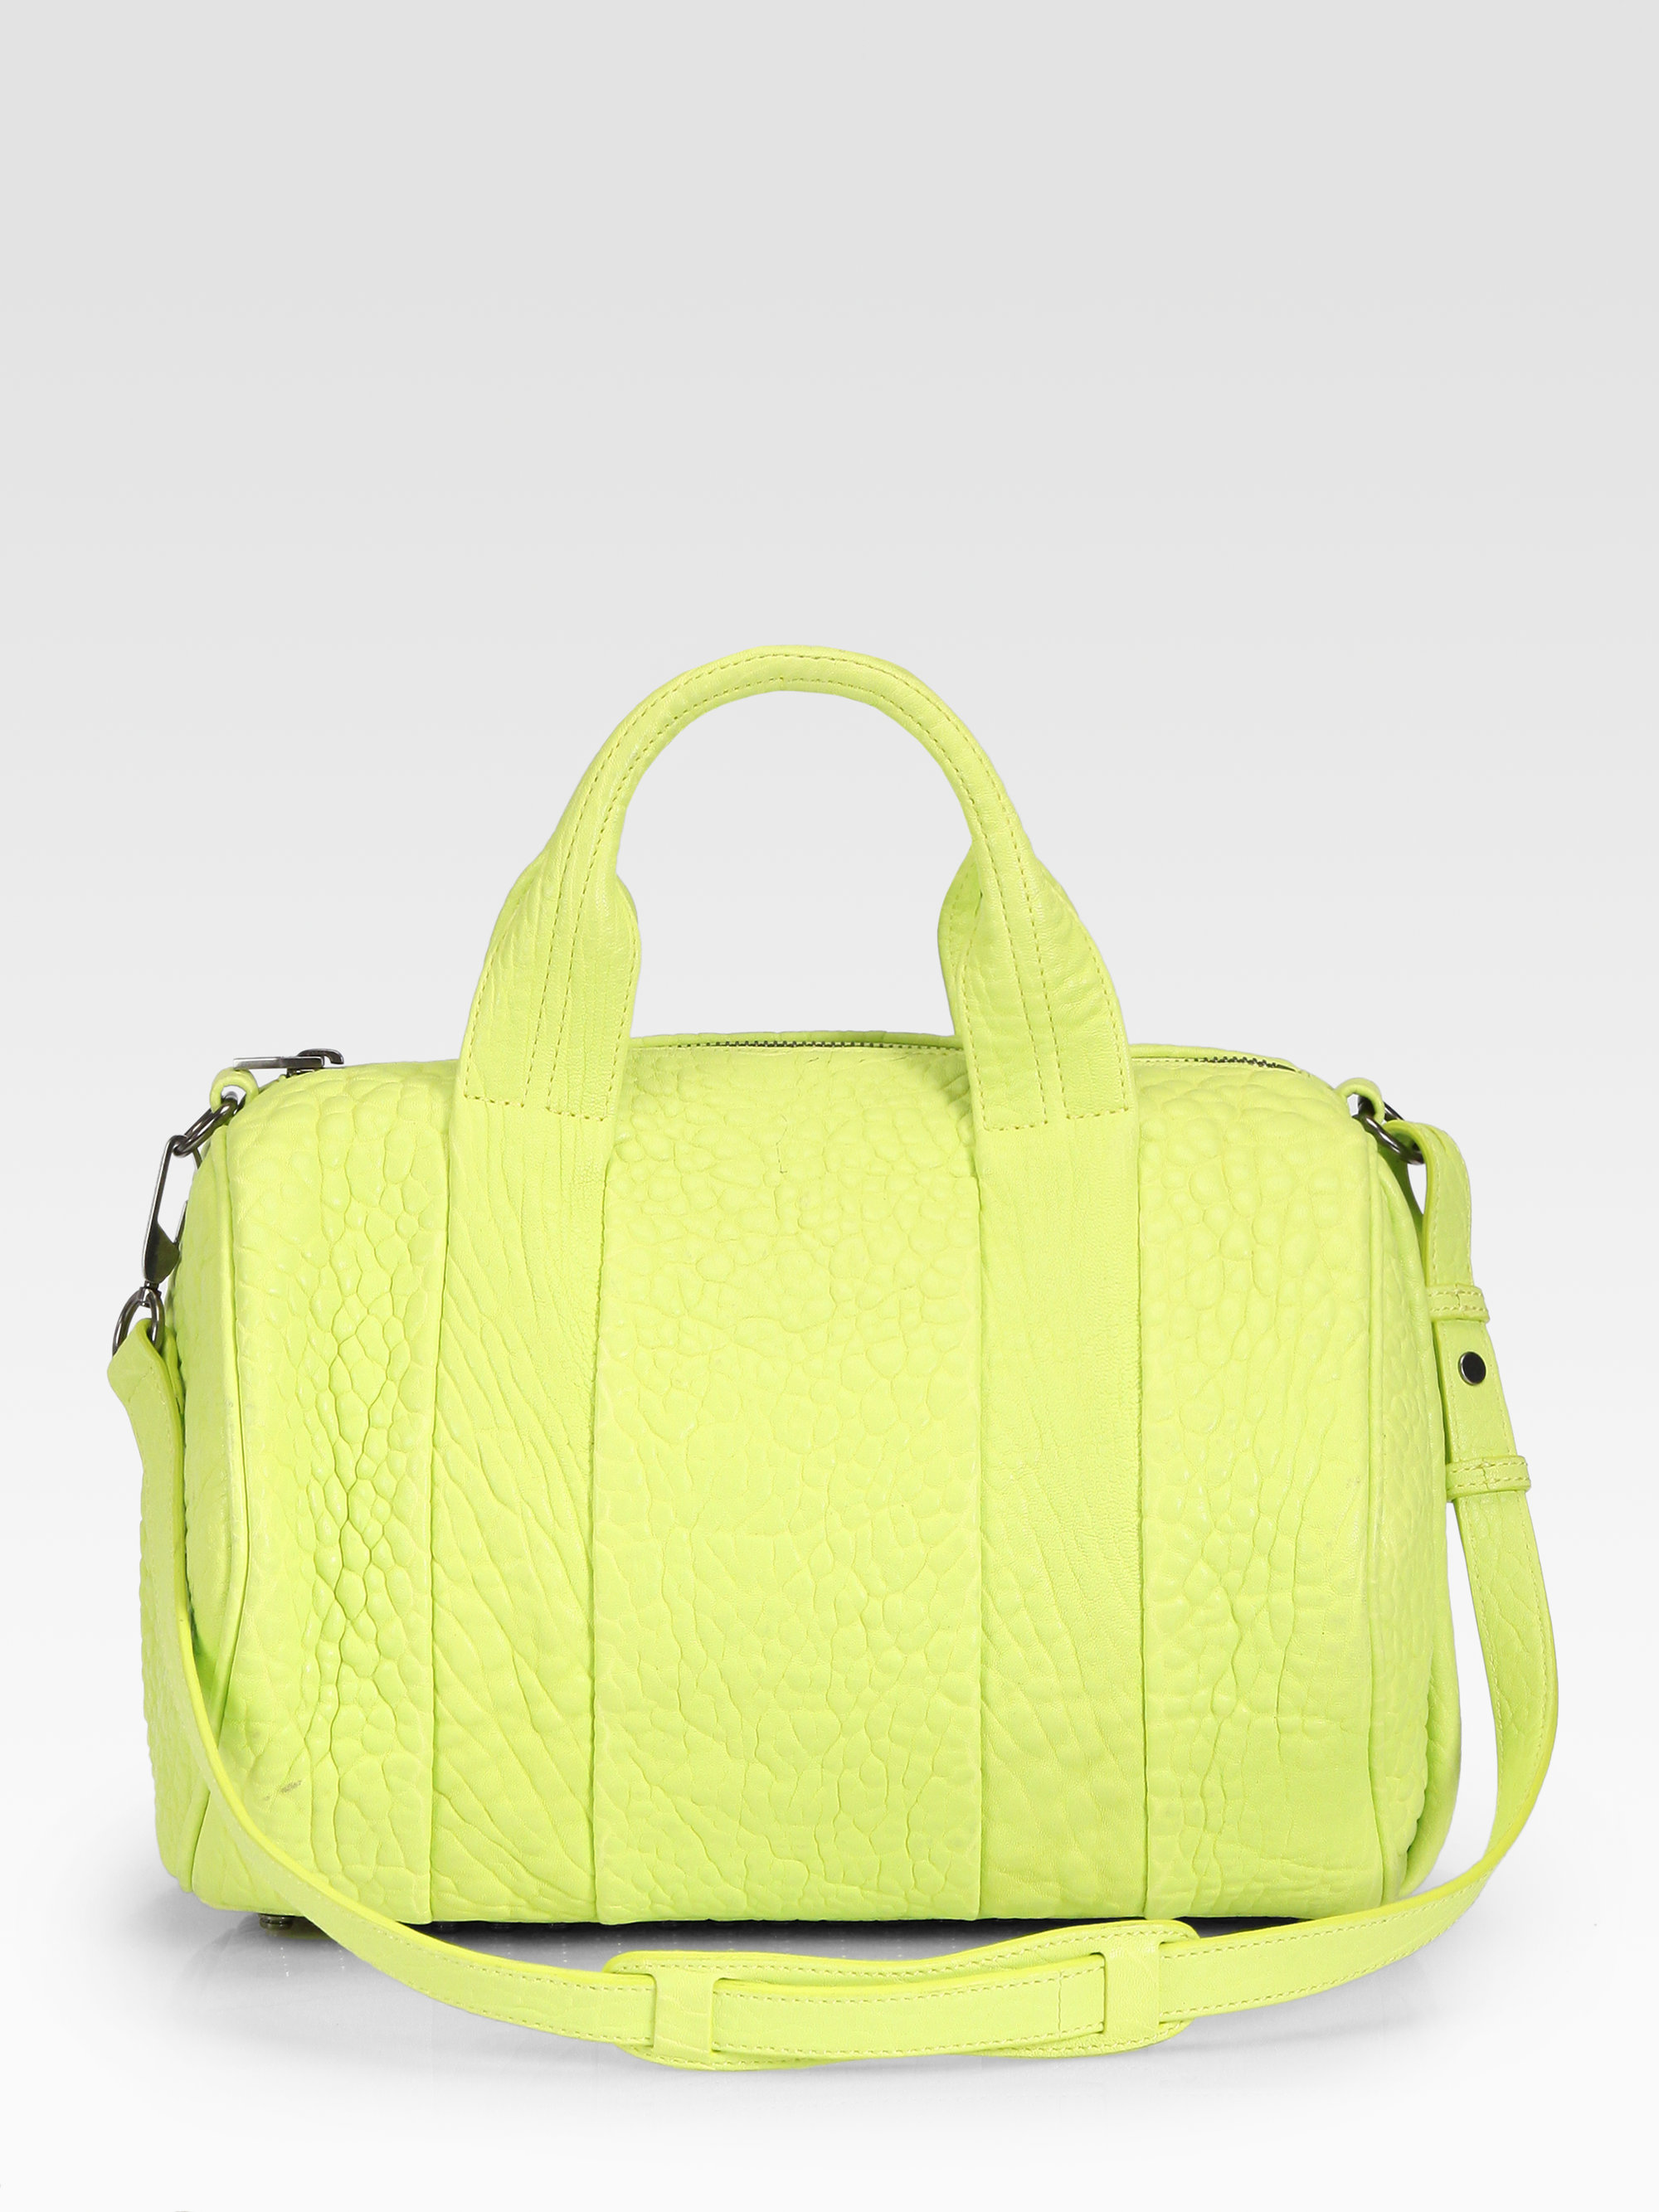 alexander wang rocco duffle bag in yellow green lyst. Black Bedroom Furniture Sets. Home Design Ideas